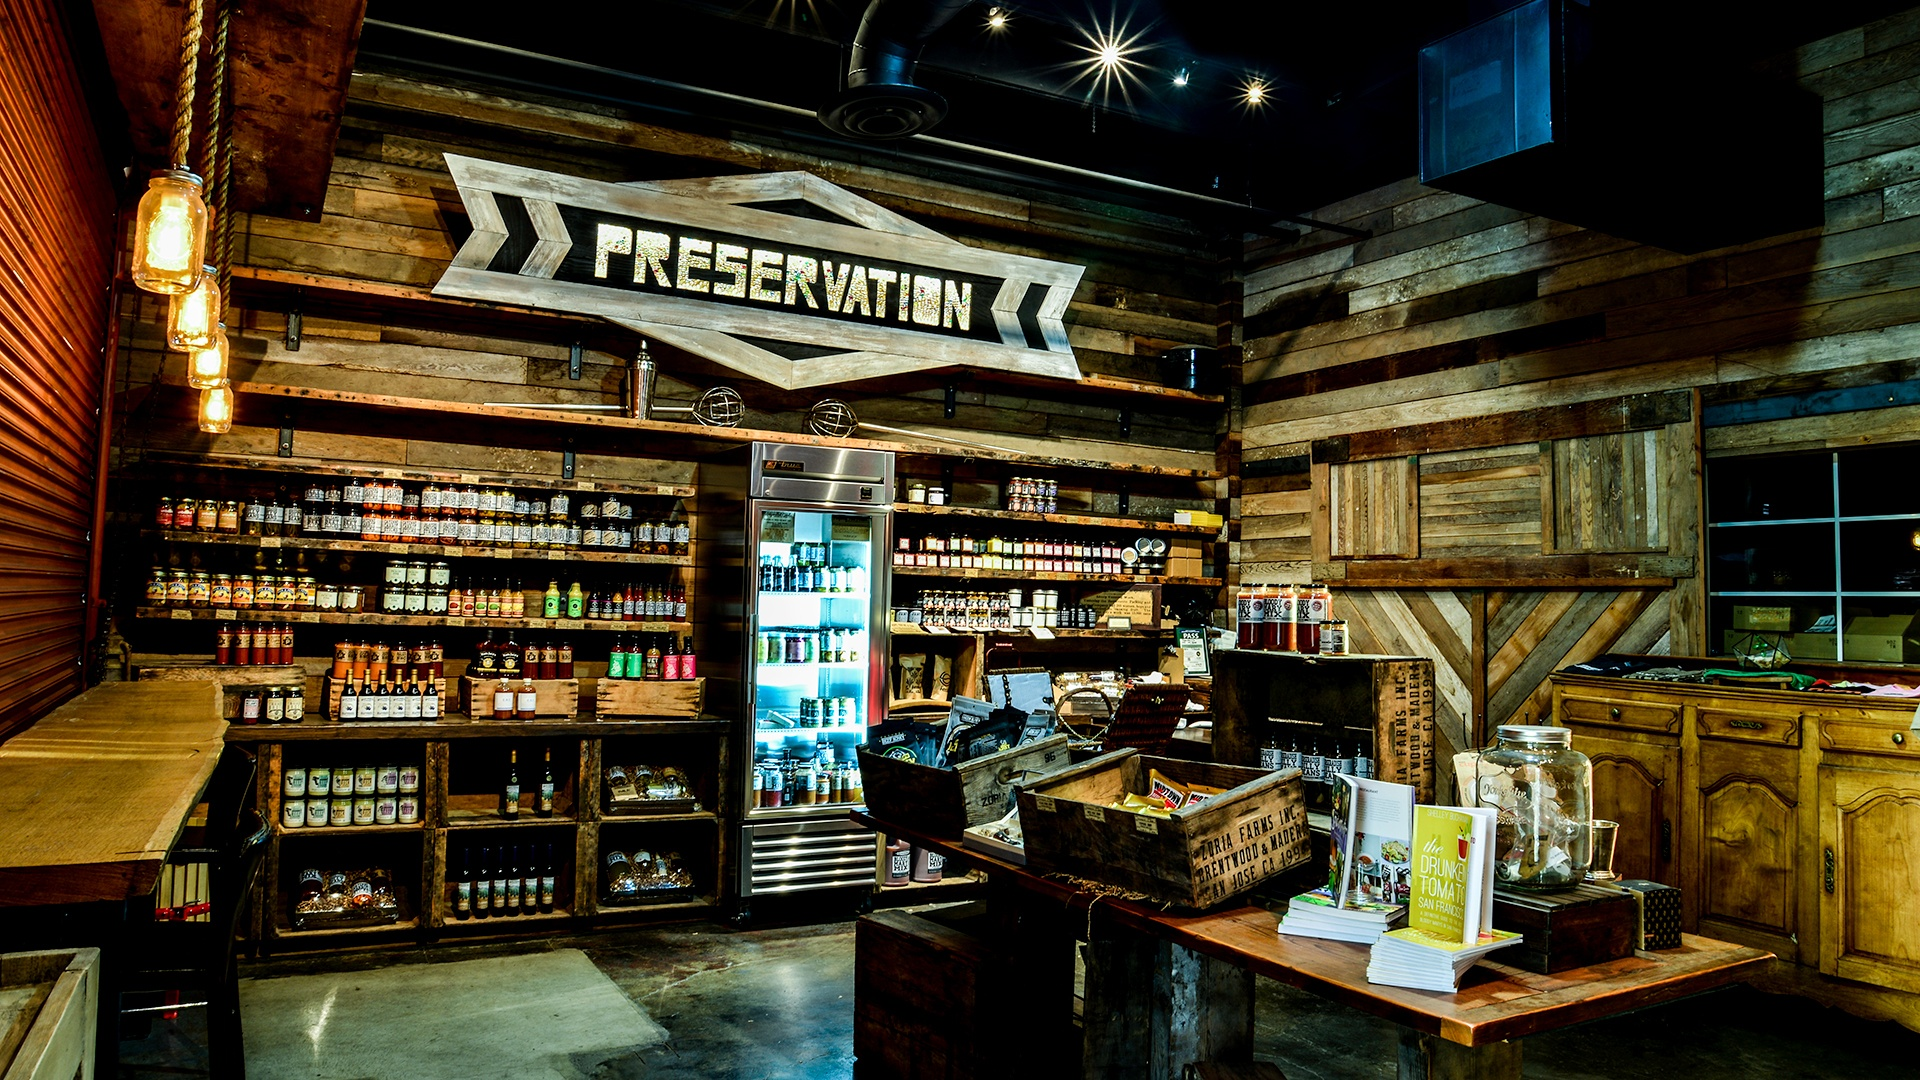 Business member spotlight: Q&A with Preservation & co. owner Jason Poole